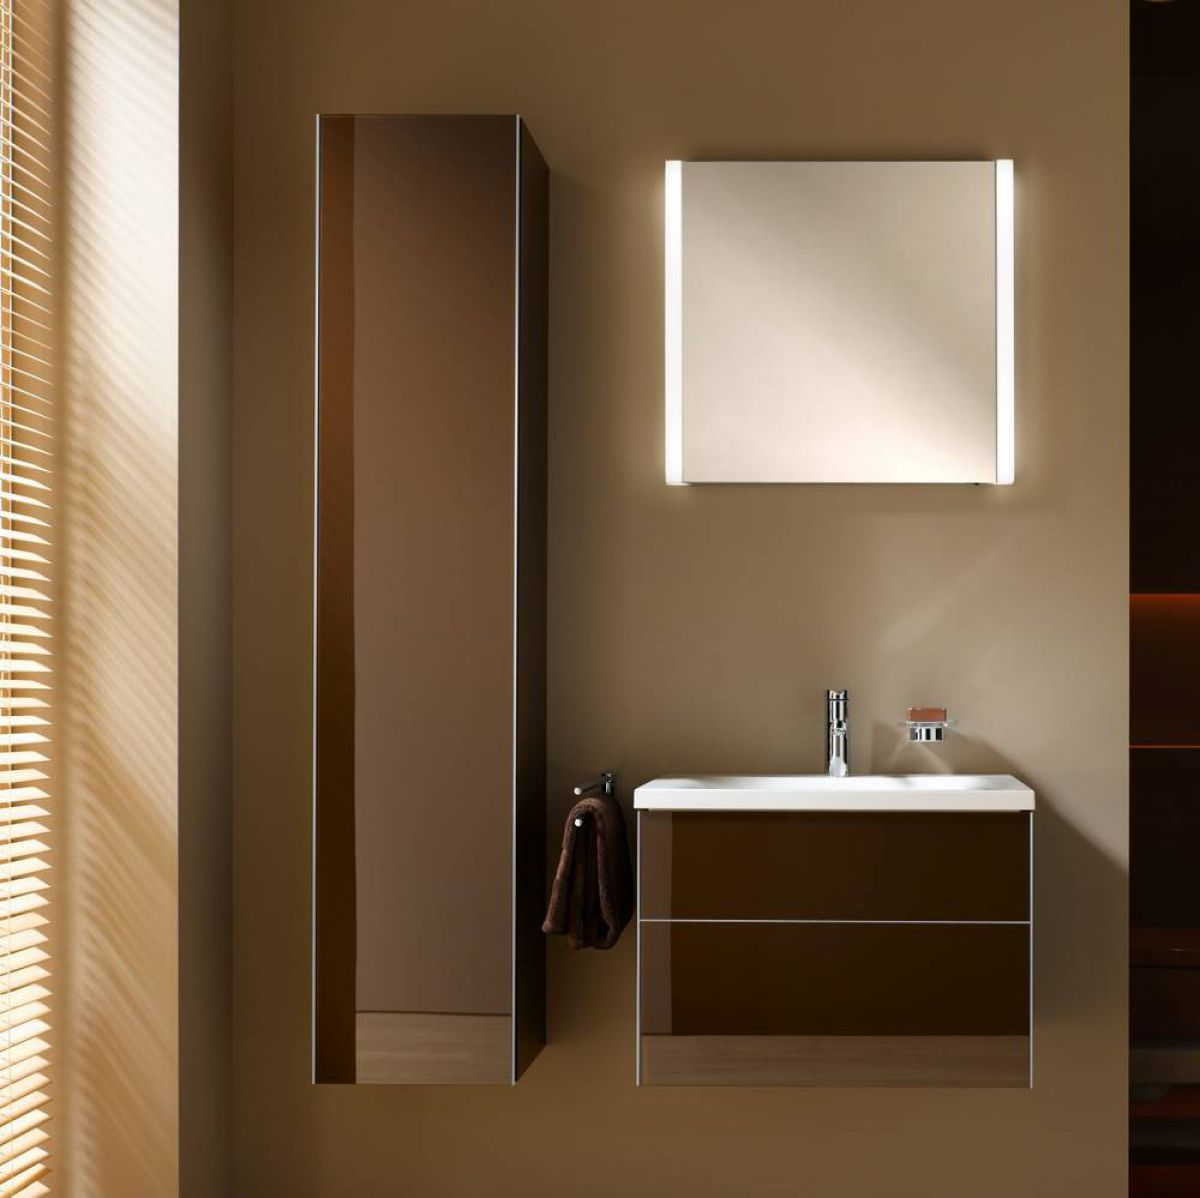 keuco royal reflex 2 light mirror uk bathrooms. Black Bedroom Furniture Sets. Home Design Ideas